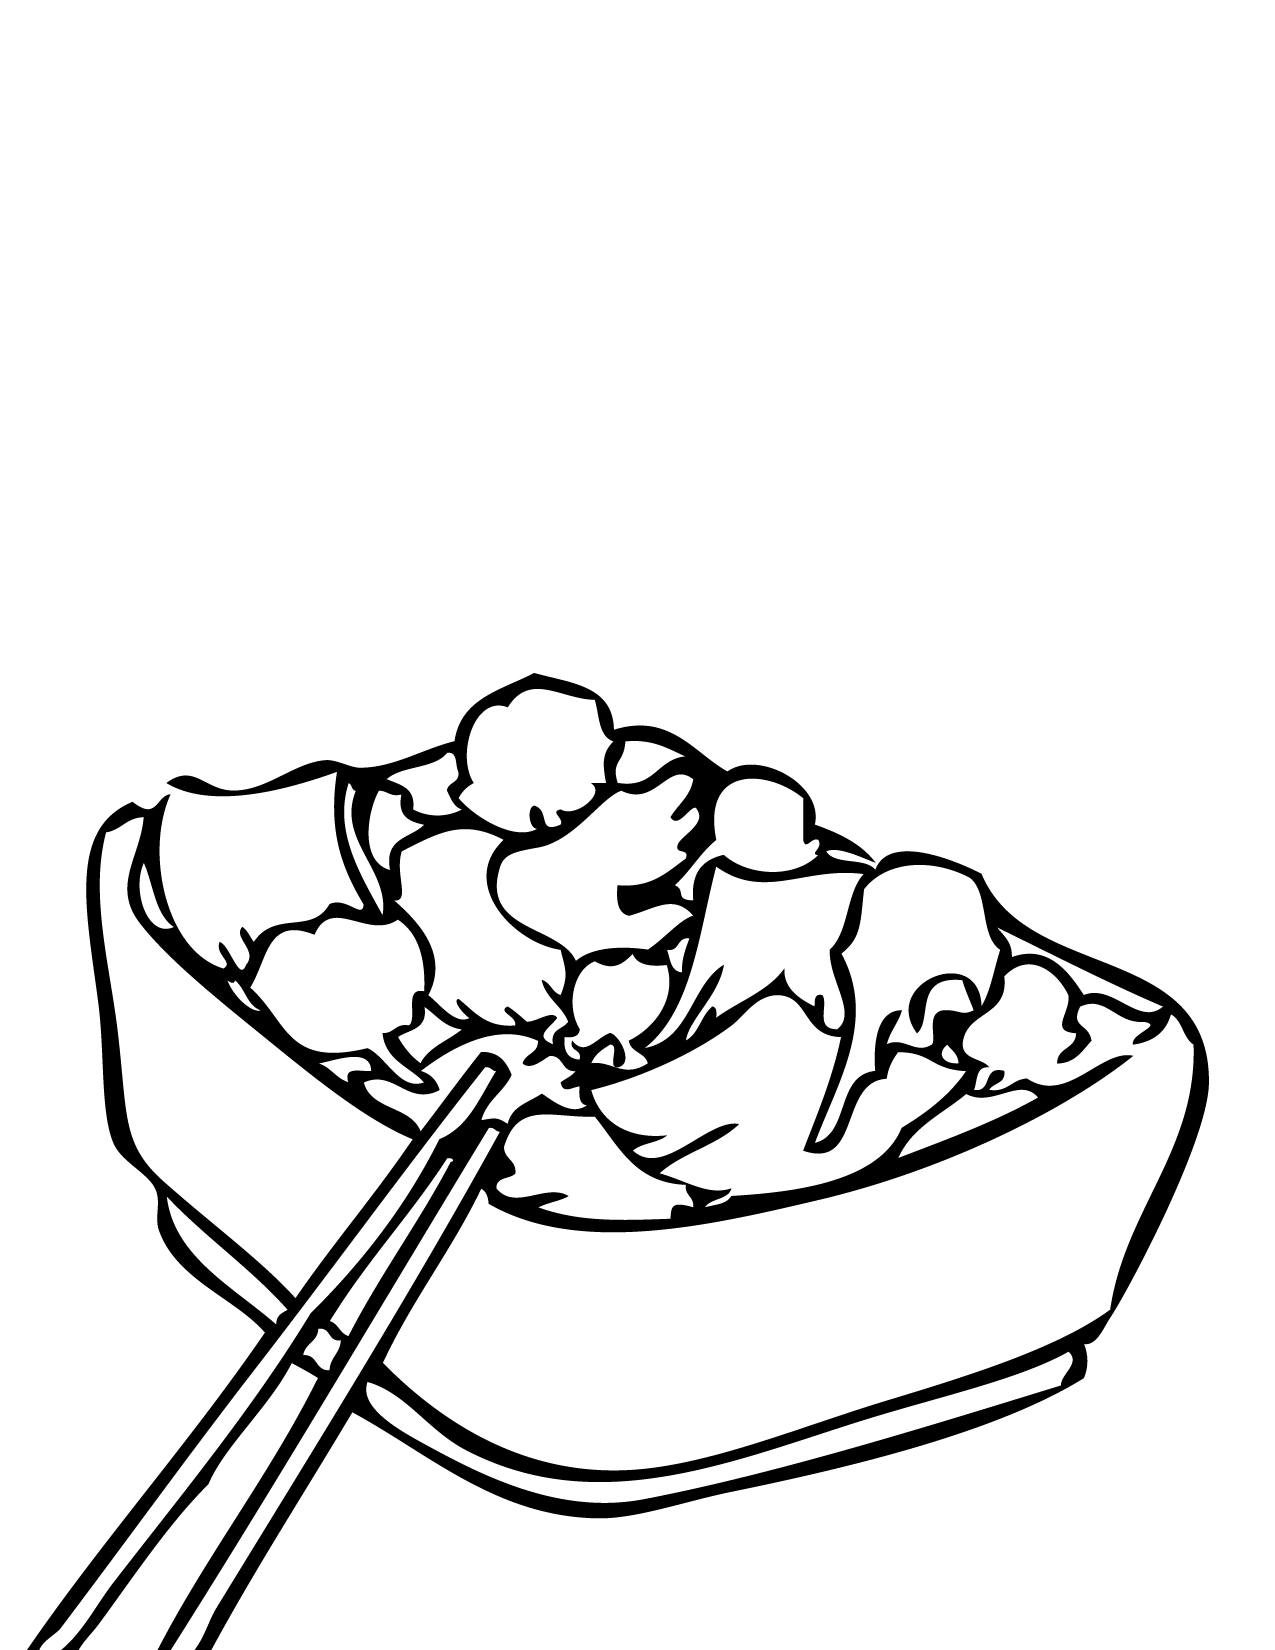 1275x1650 Broccoli Beef Coloring Page